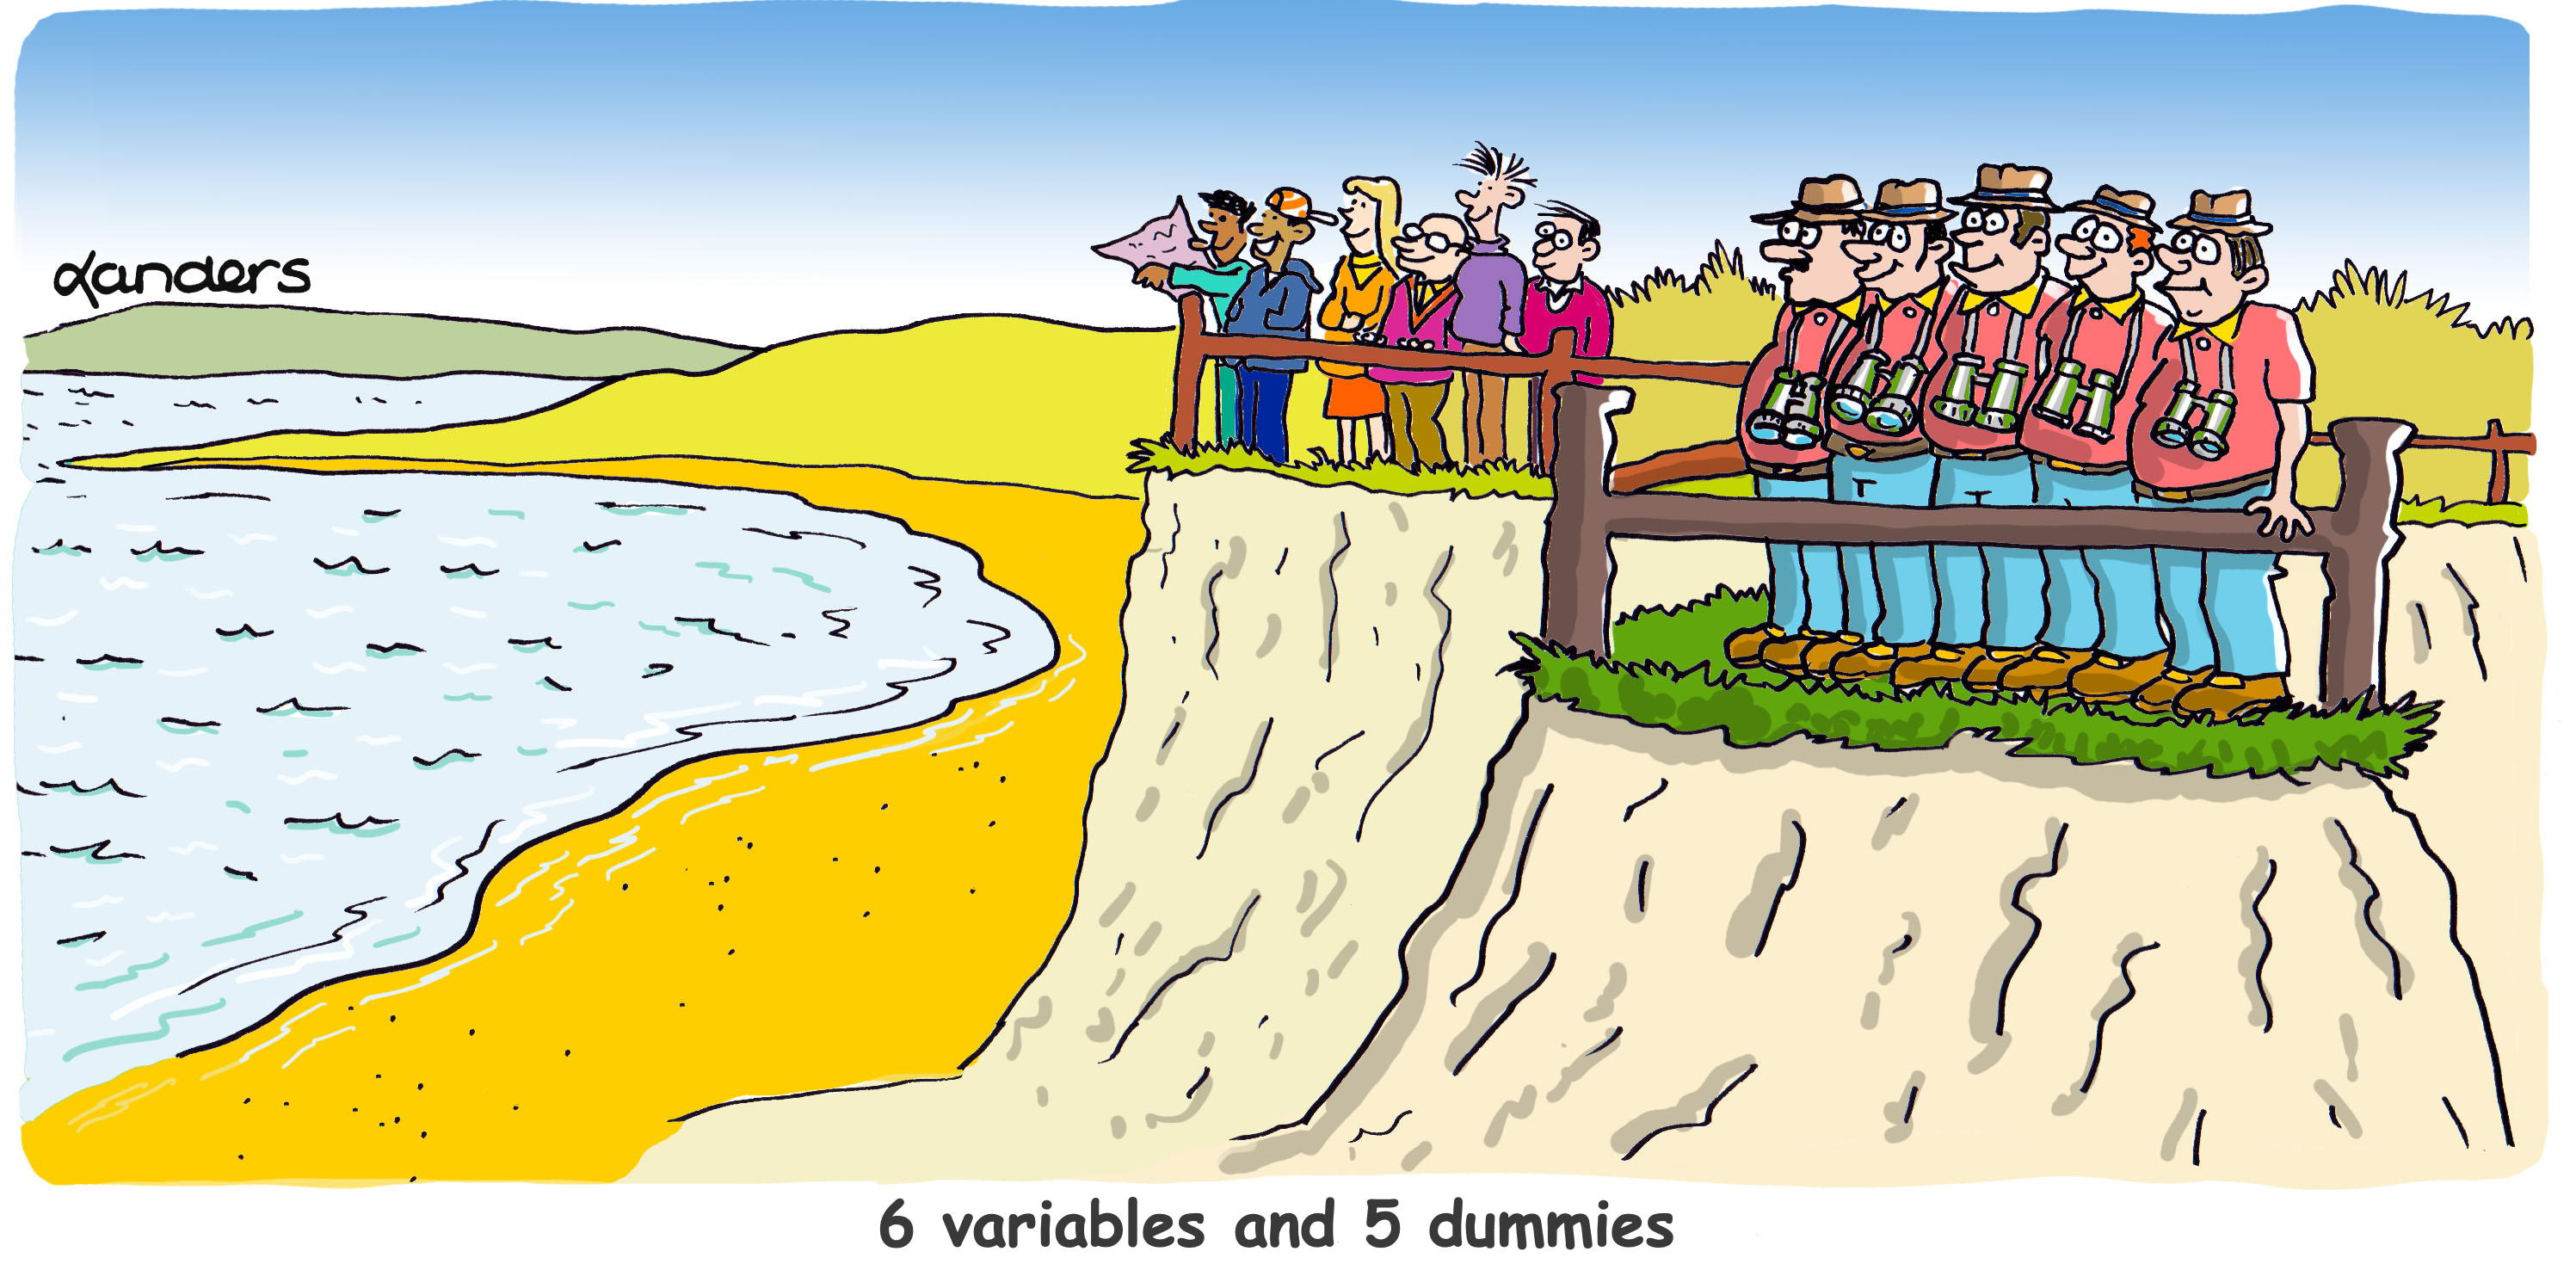 Cartoon with two groups overlooking Bay (one homogeneous and one diverse)